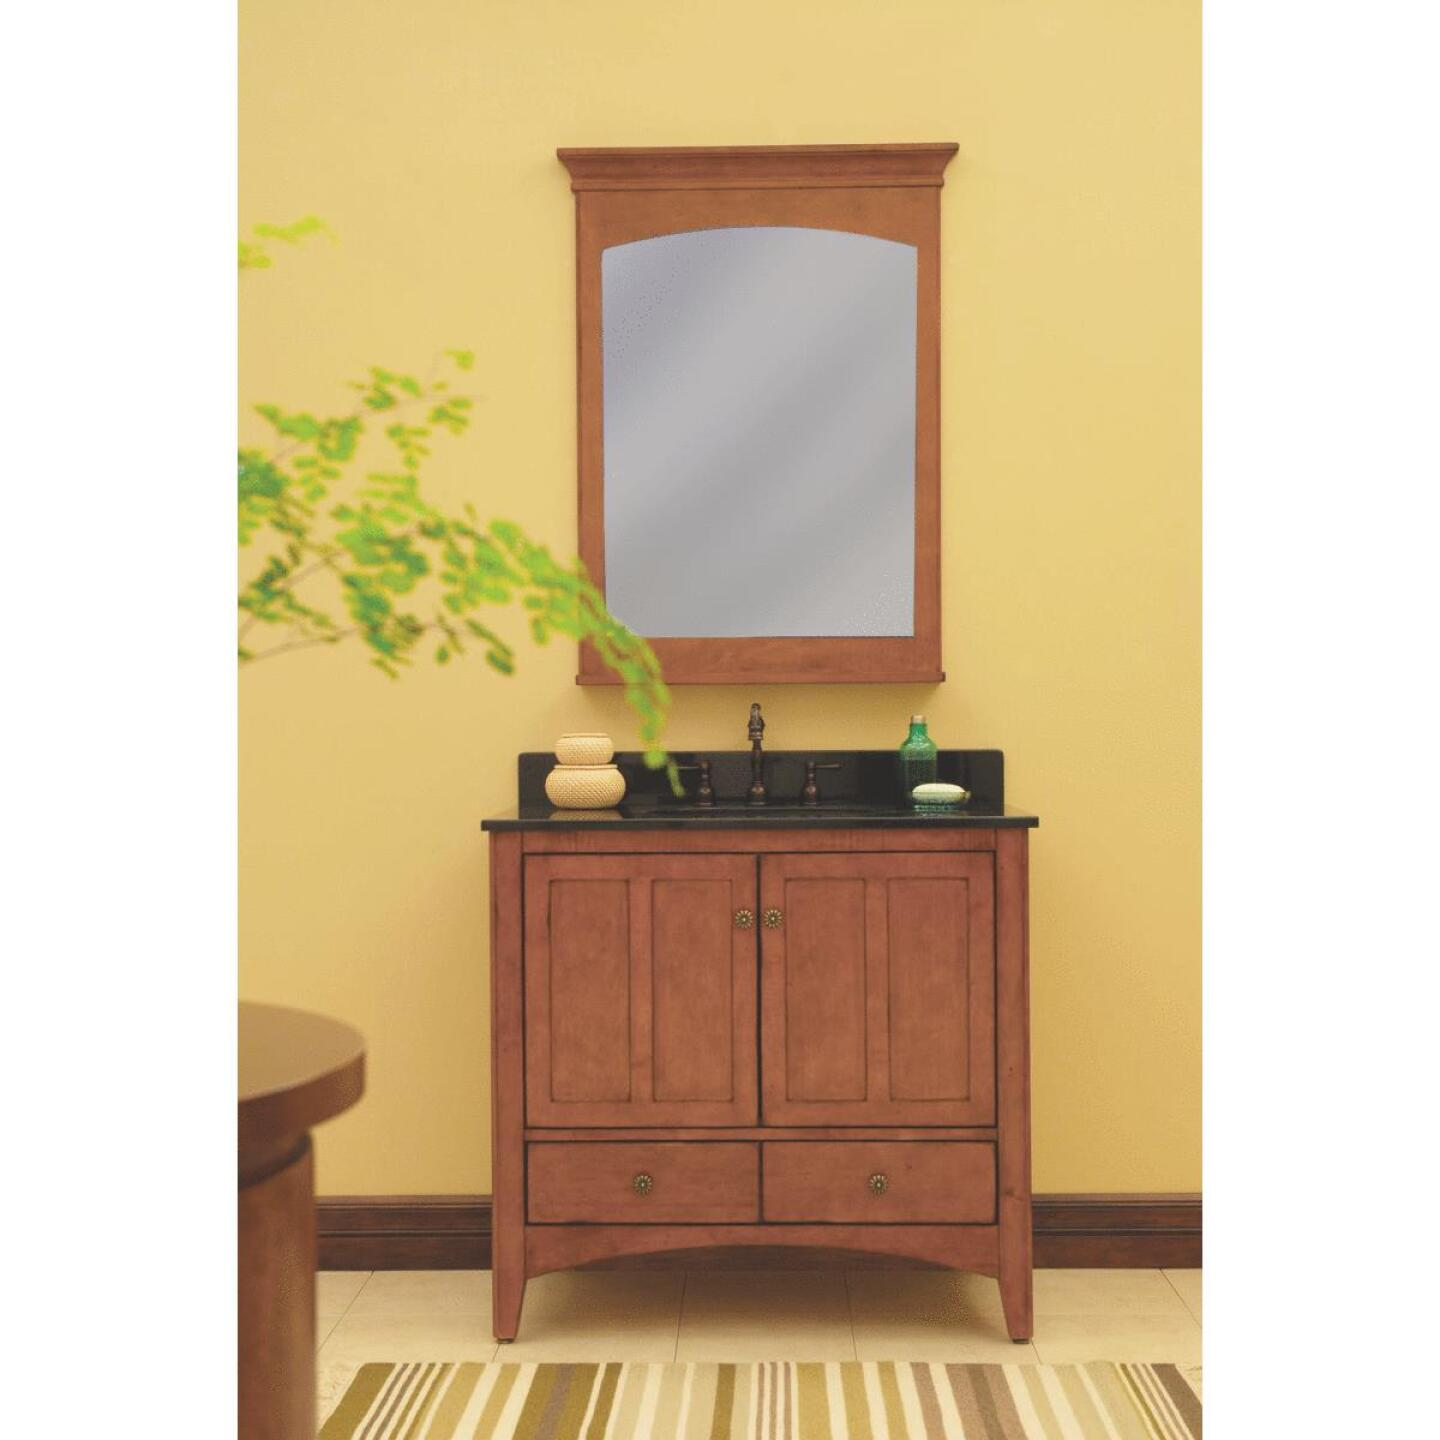 Sunny Wood Expressions Warm Cinnamon 30 In. W x 34 In. H x 21-1/4 In. D Vanity Base, 2 Door/1 Drawer Image 2